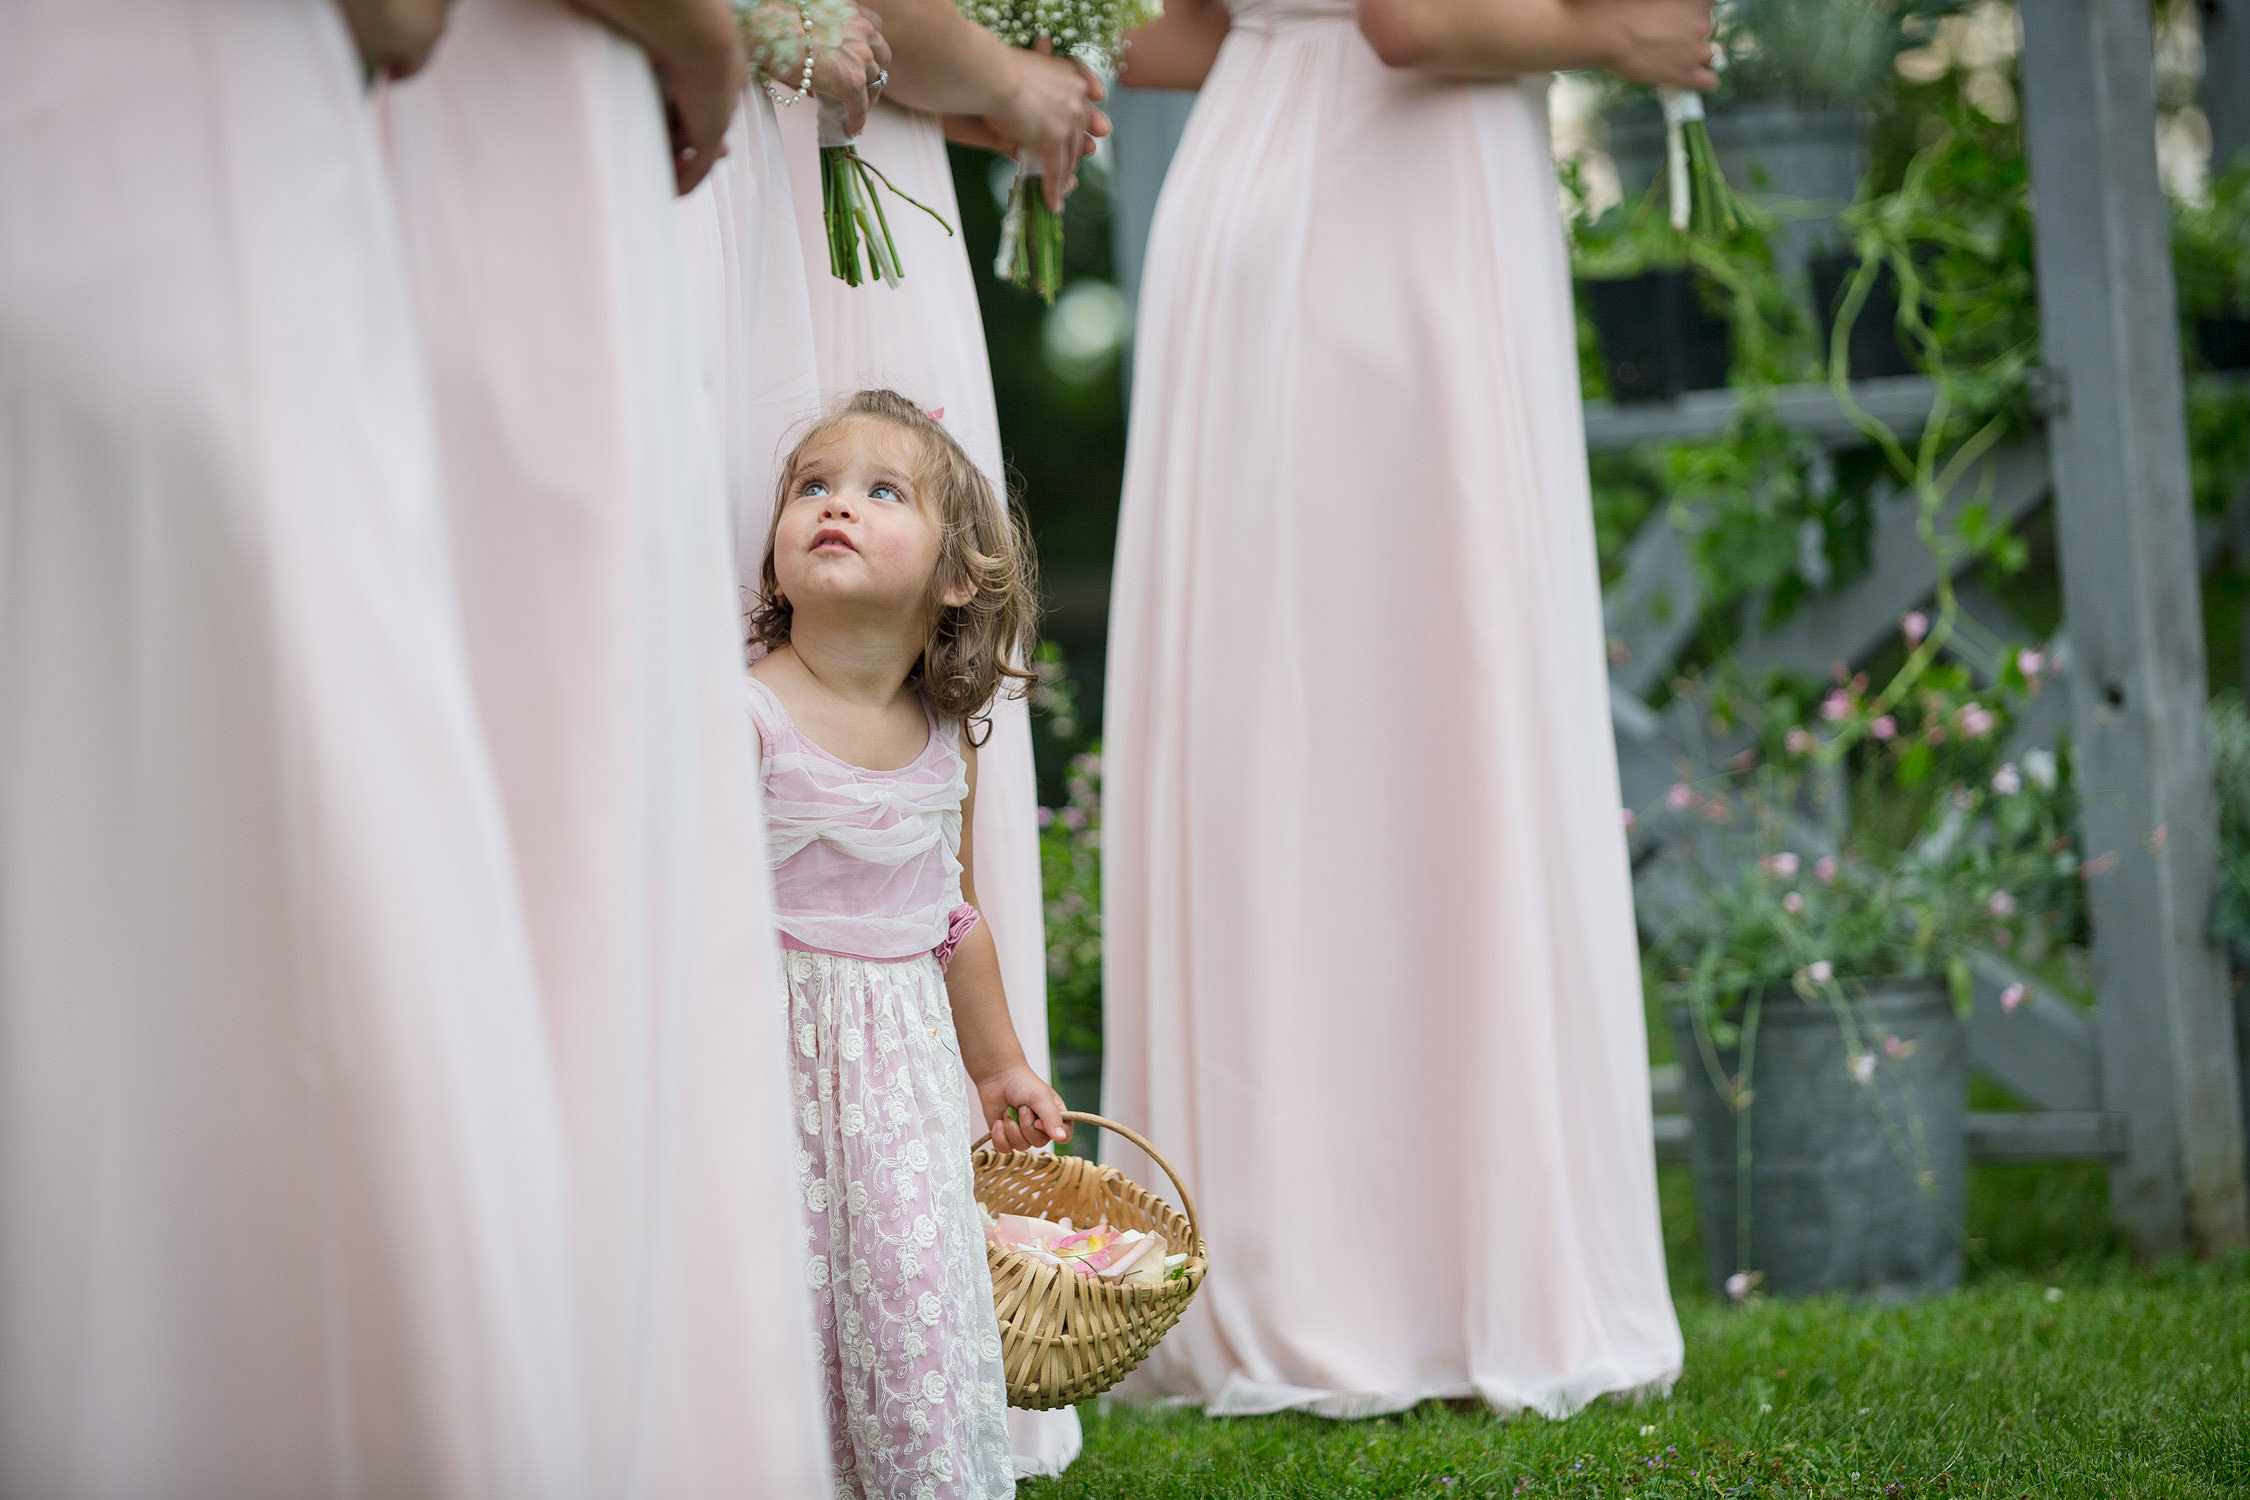 A flower girl peeks up between the dresses of the bridesmaids during a ceremony at the Grand Isle Lake House by Vermont wedding photographer Stina Booth